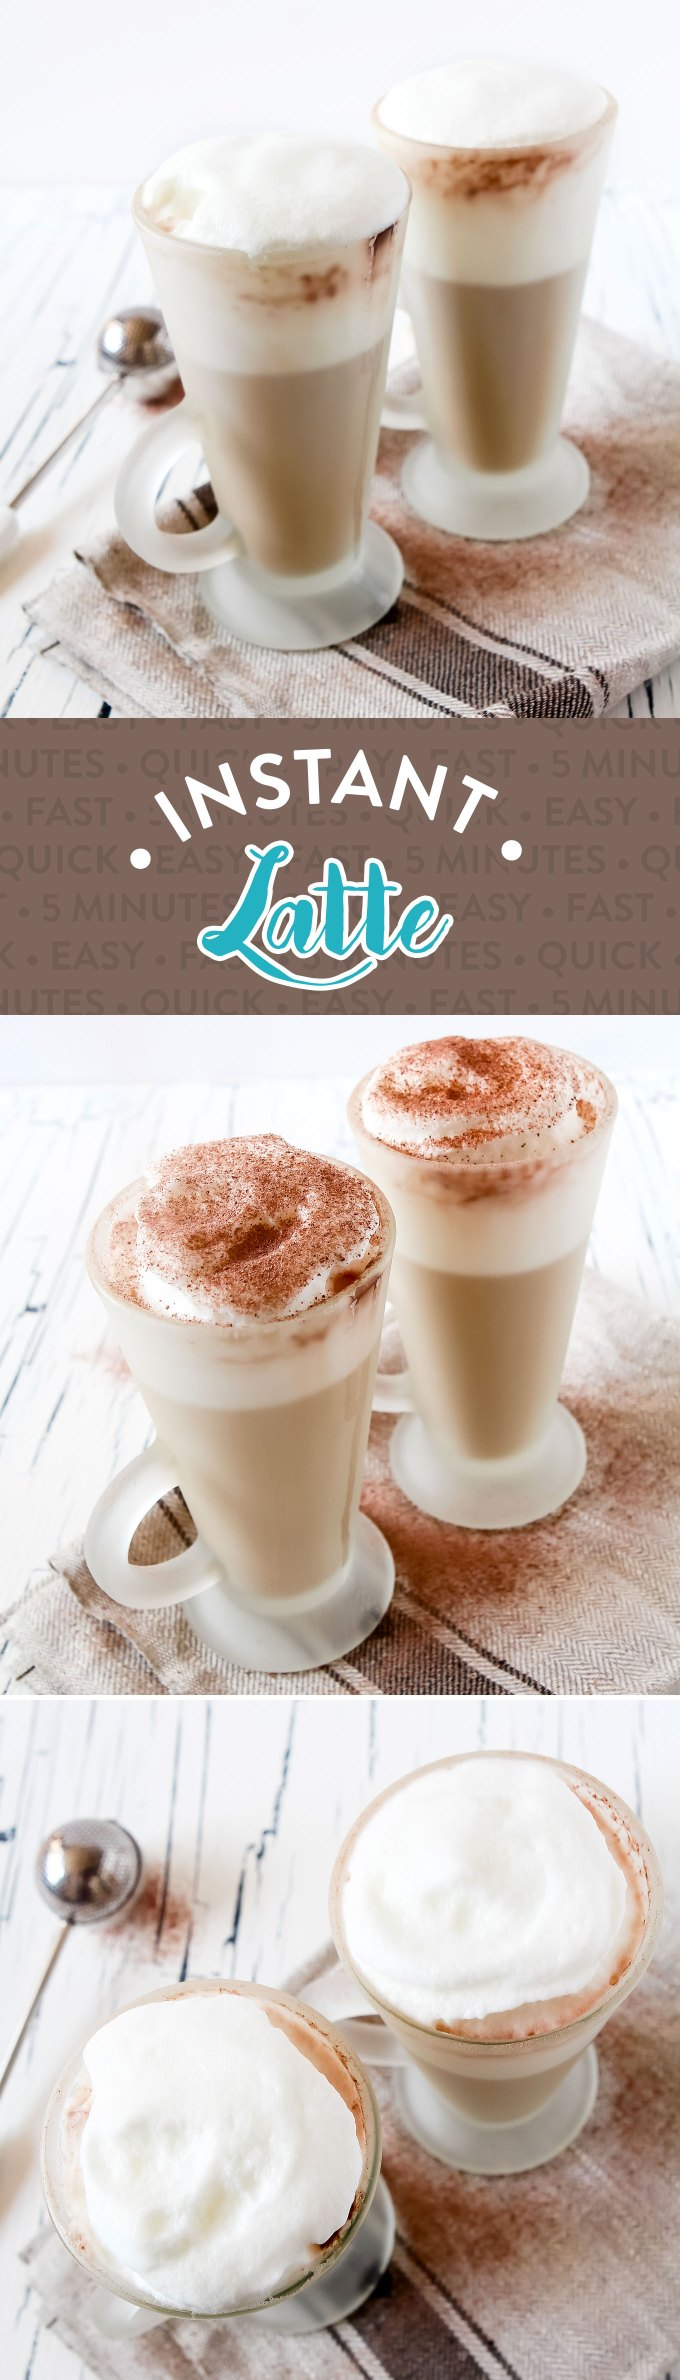 Coffee Shop Style Homemade Instant Latte Recipe by Sweet2EatBaking.com | No need to nip to the shop for your latte fix! This instant latte is made in minutes with 2-3 ingredients, has a delicious flavour and foamed milk!